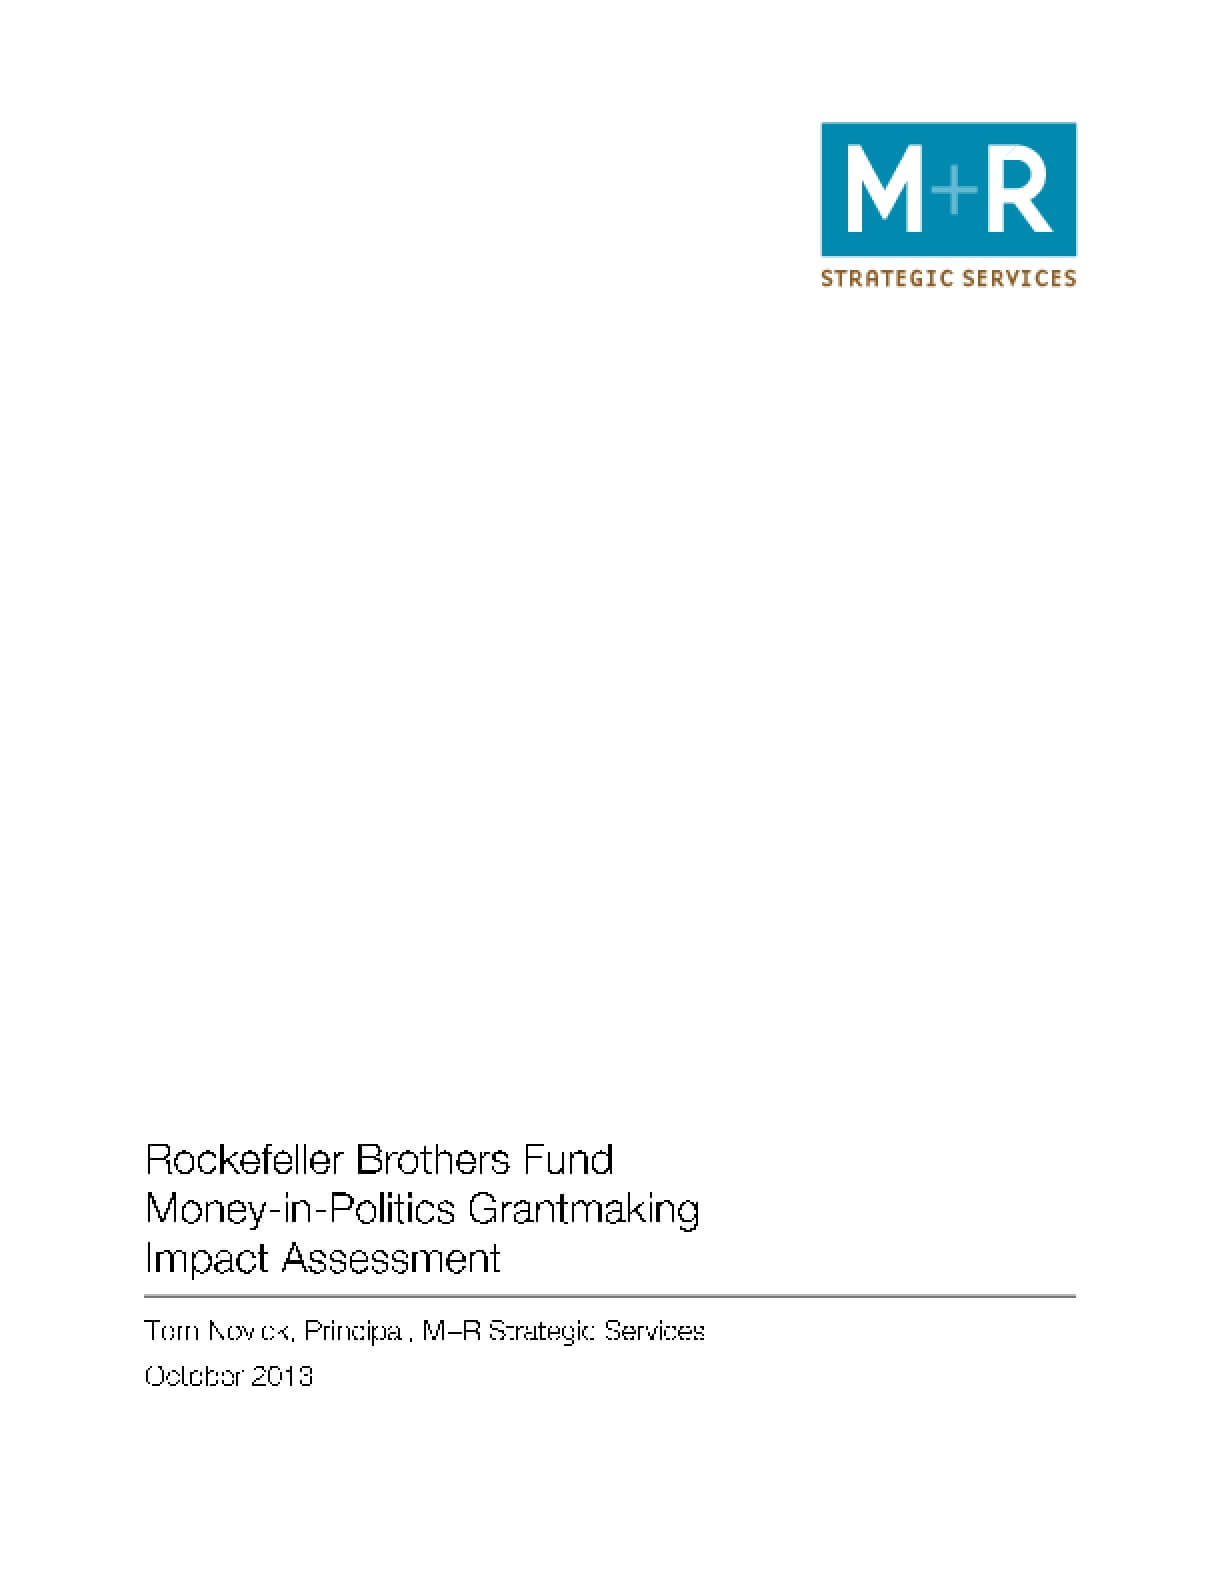 Rockefeller Brothers Fund Money-in-Politics Grantmaking Impact Assessment